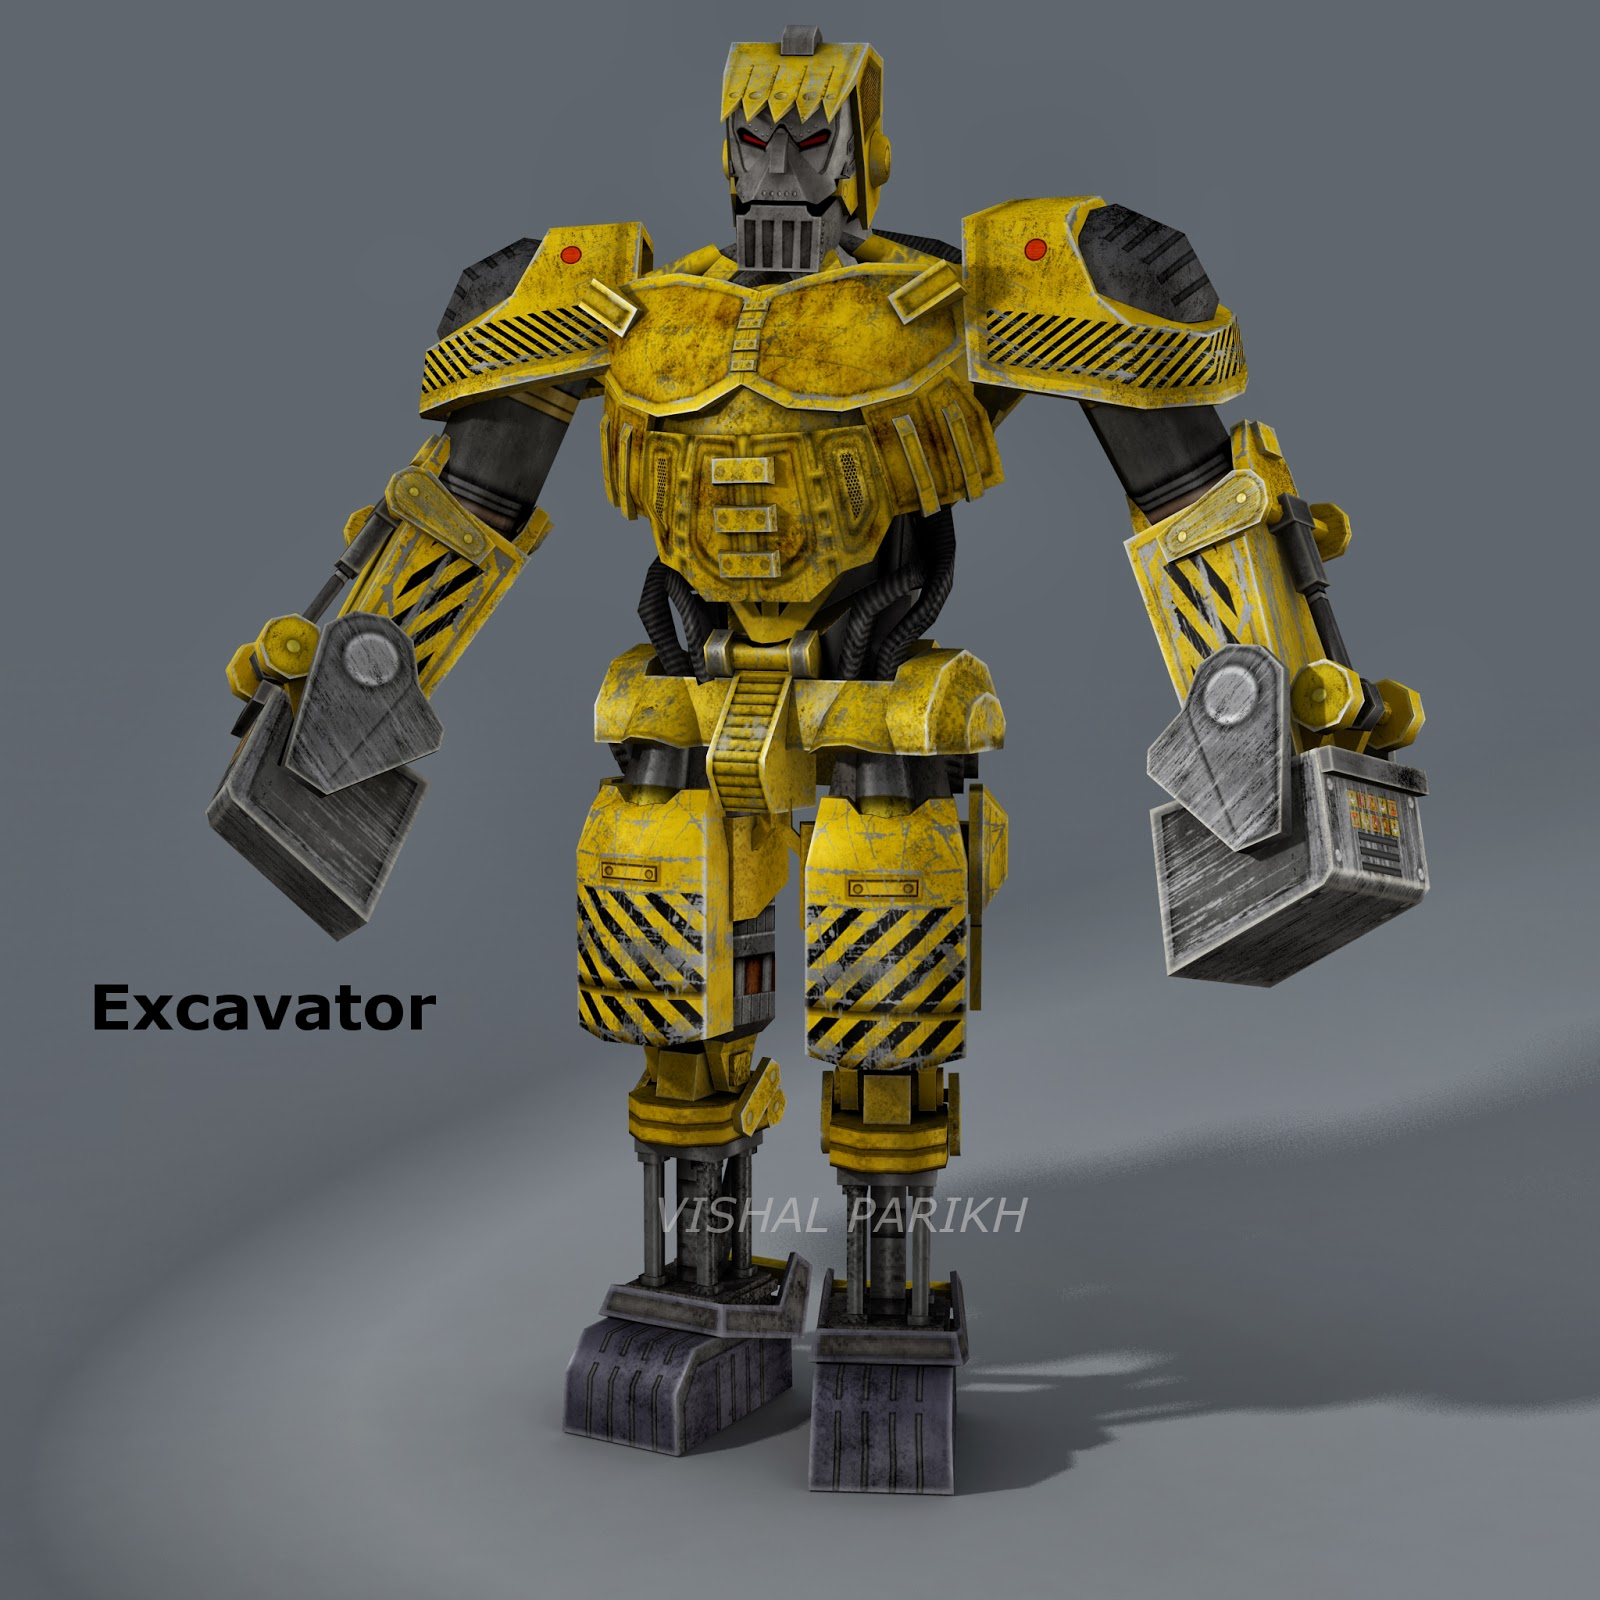 Real Excavator Games Real Steel hd Mobile Game